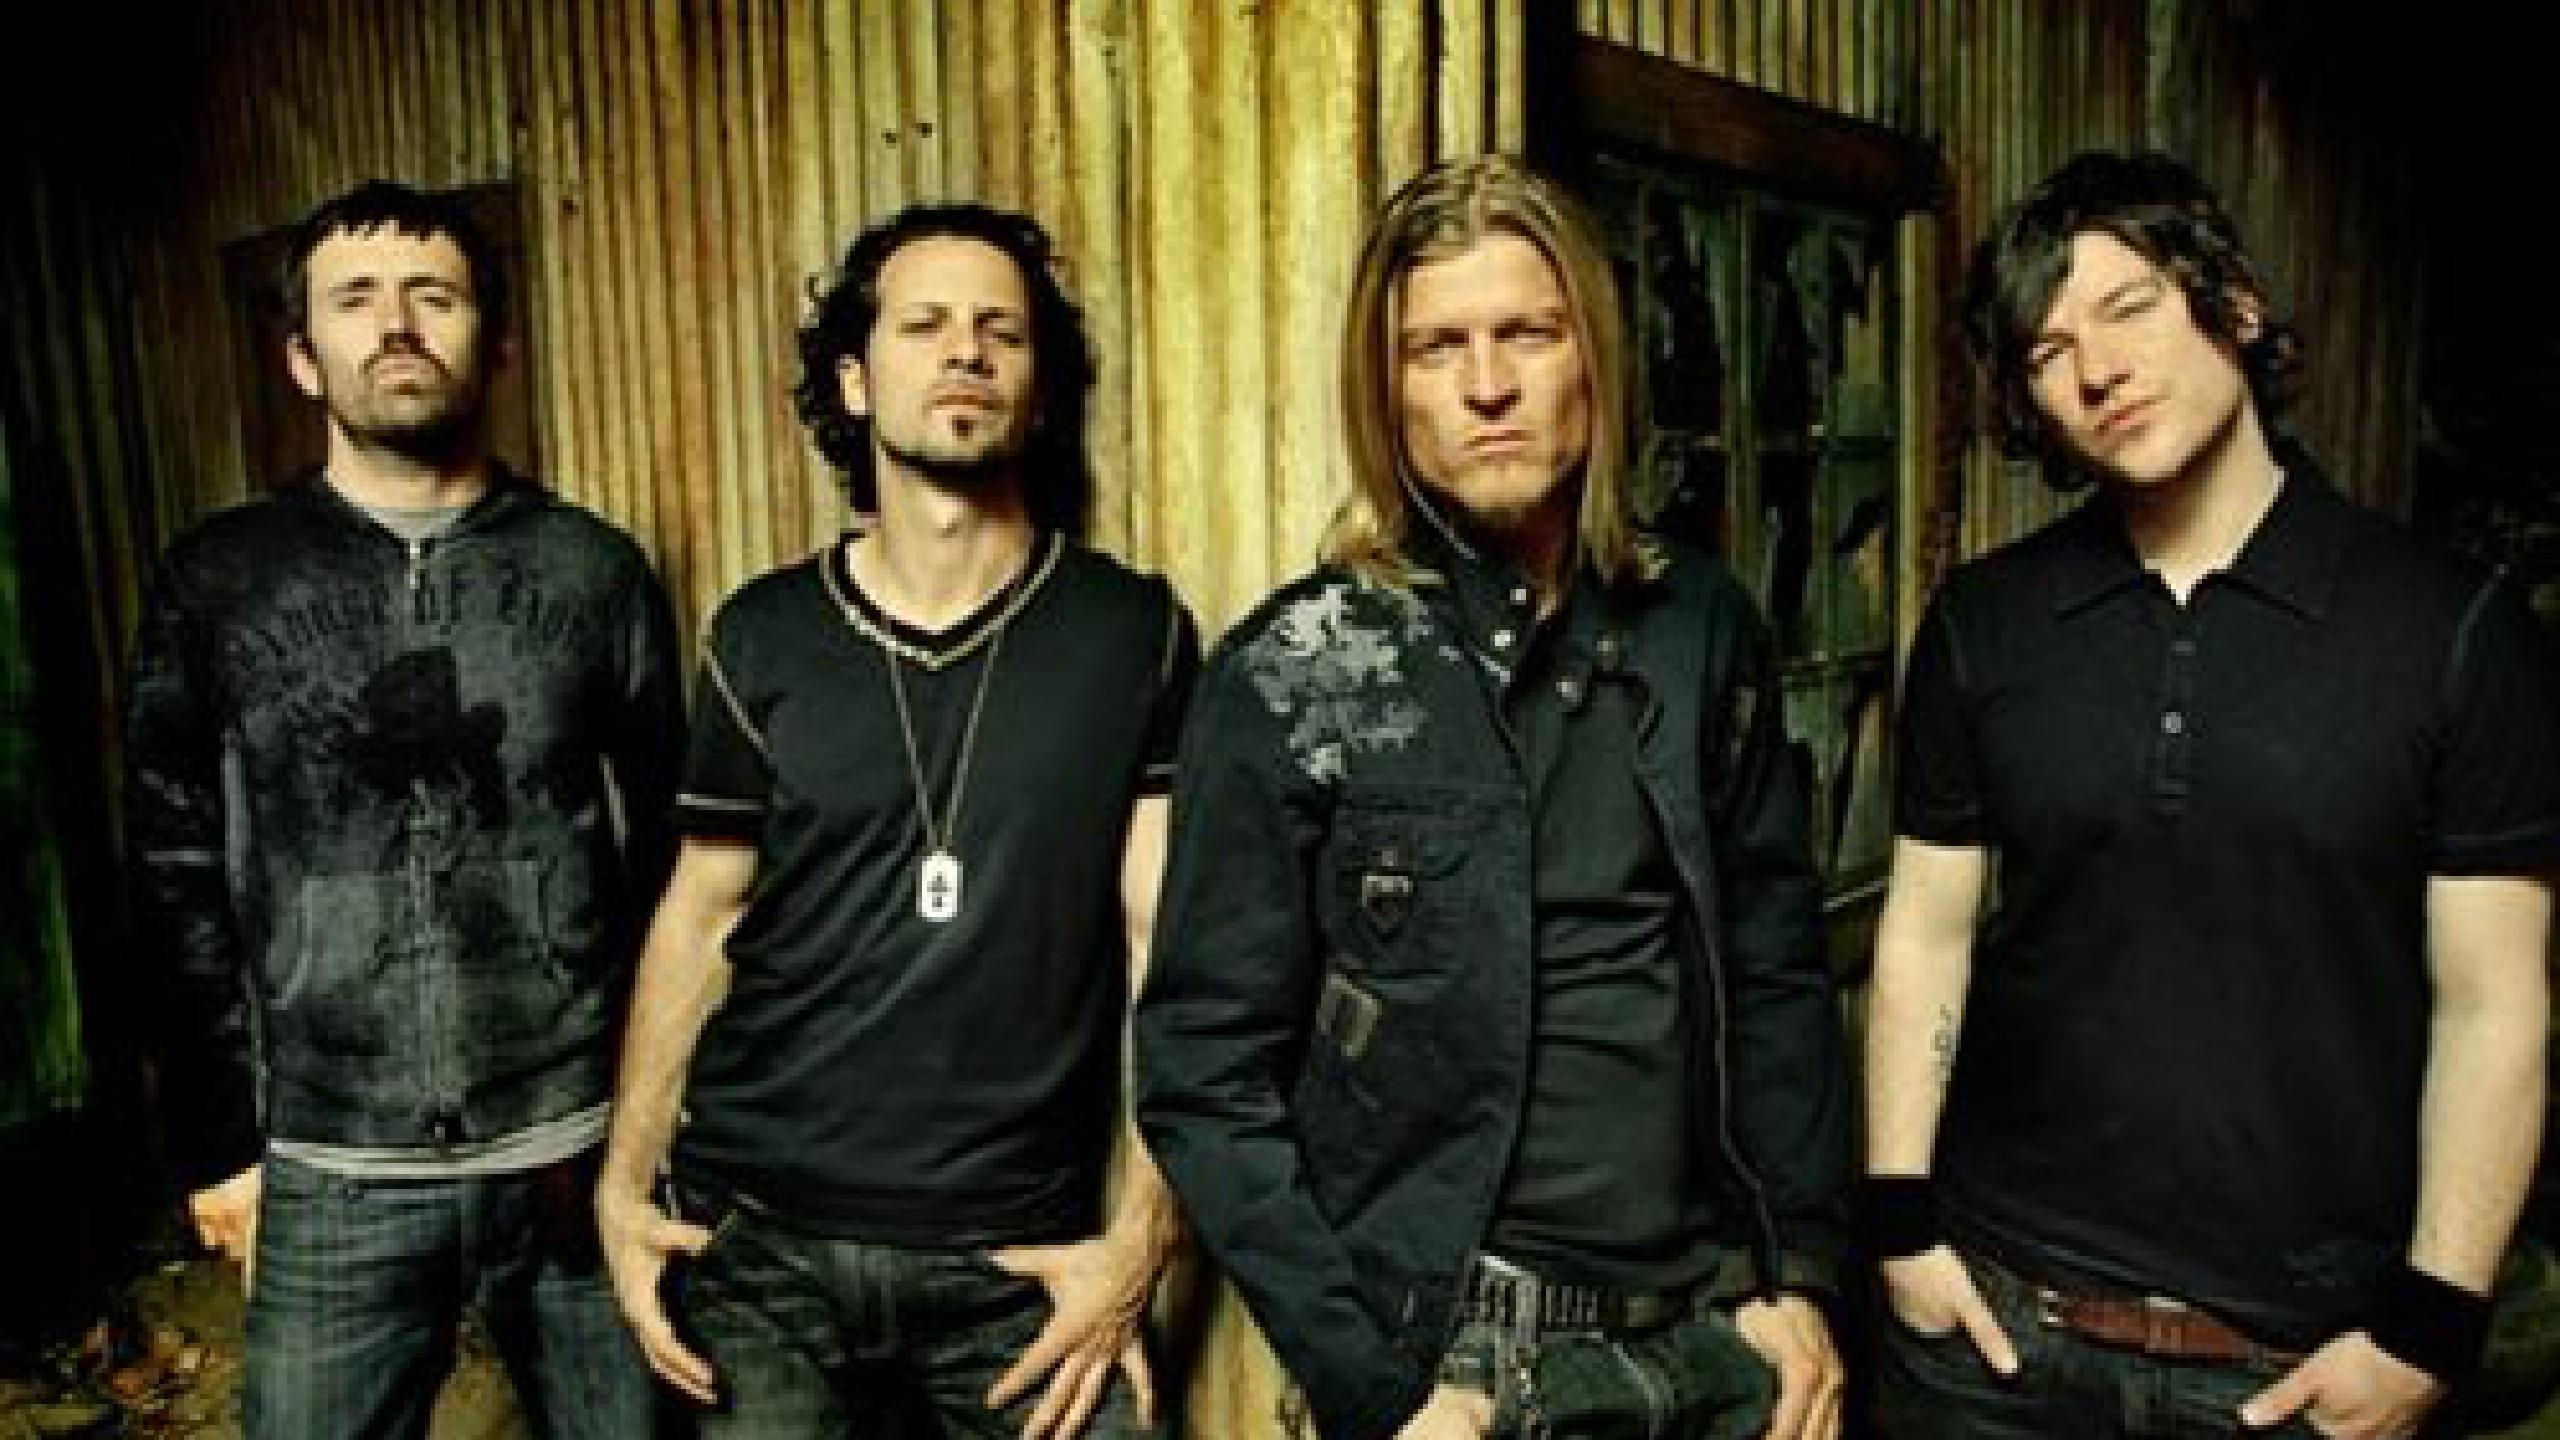 Puddle Of Mudd Tour 2020 Puddle of Mudd tour dates 2019 2020. Puddle of Mudd tickets and